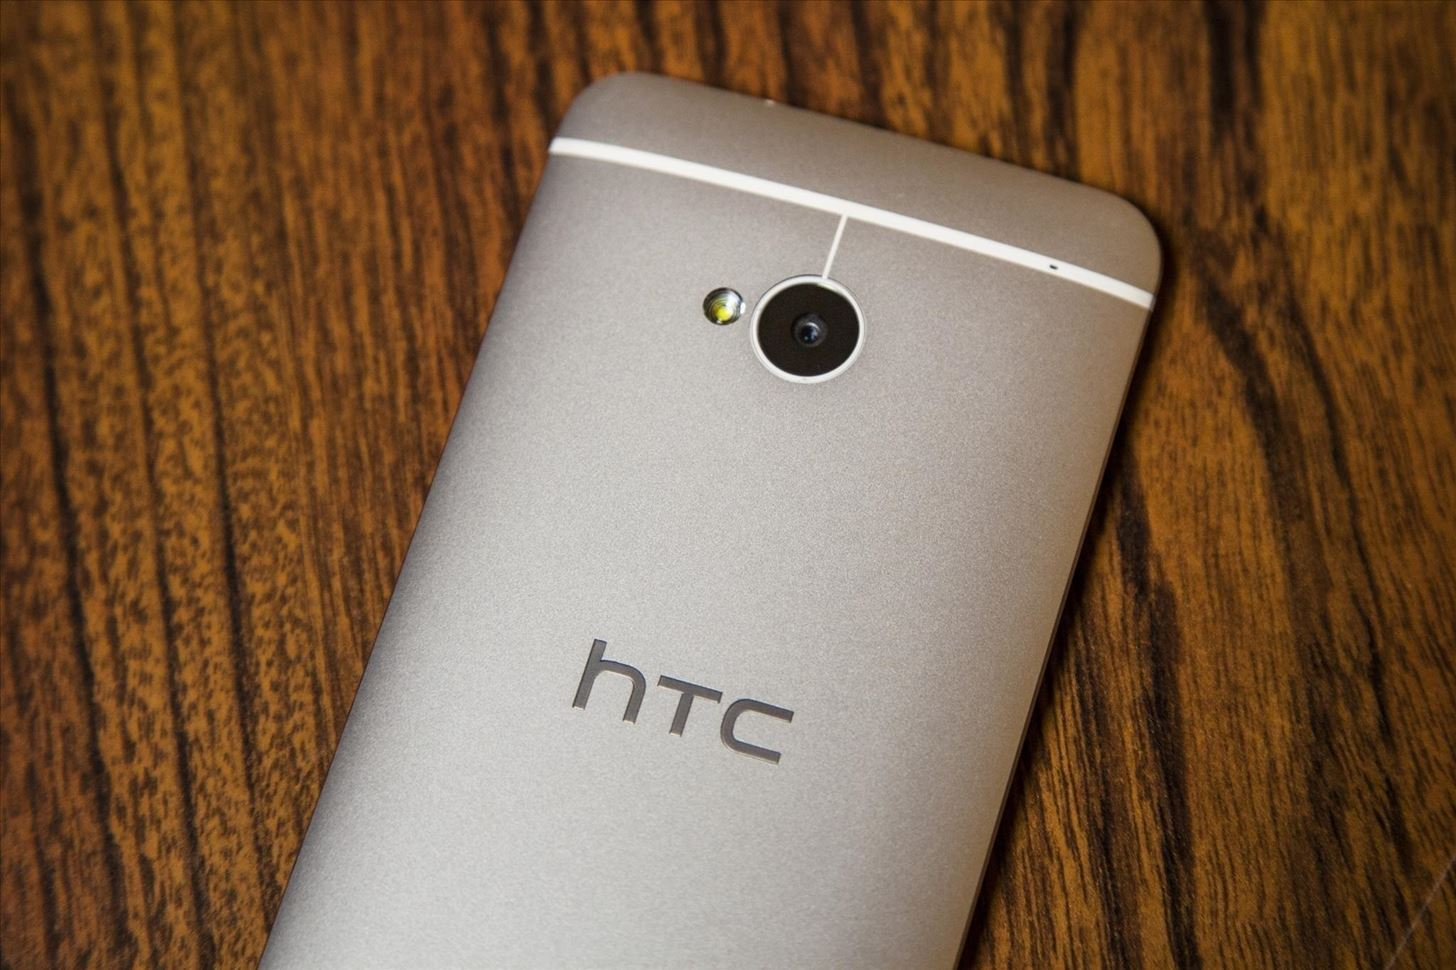 HTC Readies Its Follow-Up to the HTC One